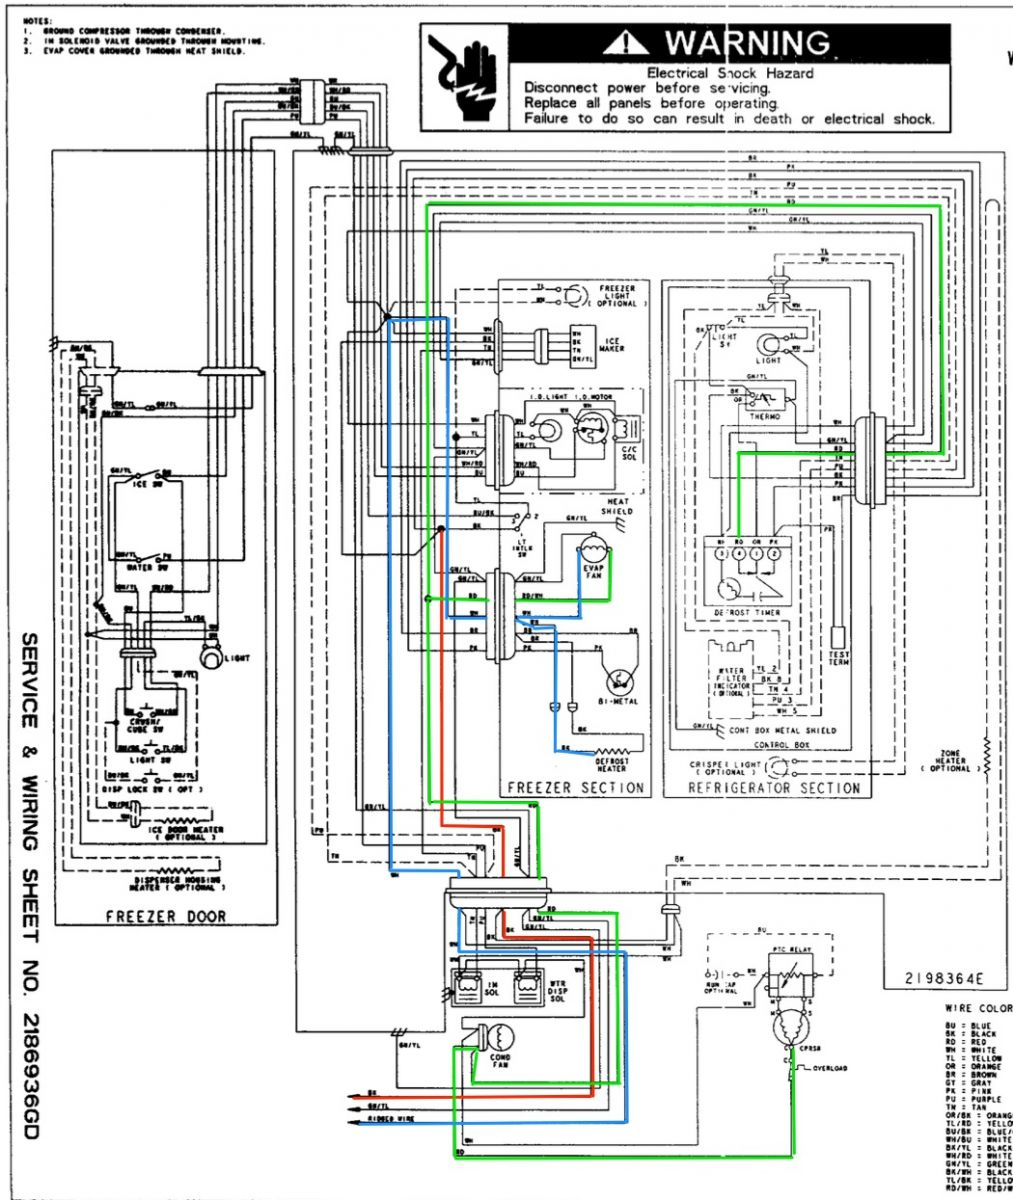 6 wire rtd wire diagram whirlpool ed25rfxfw01 refrigerator wiring diagram - the ...